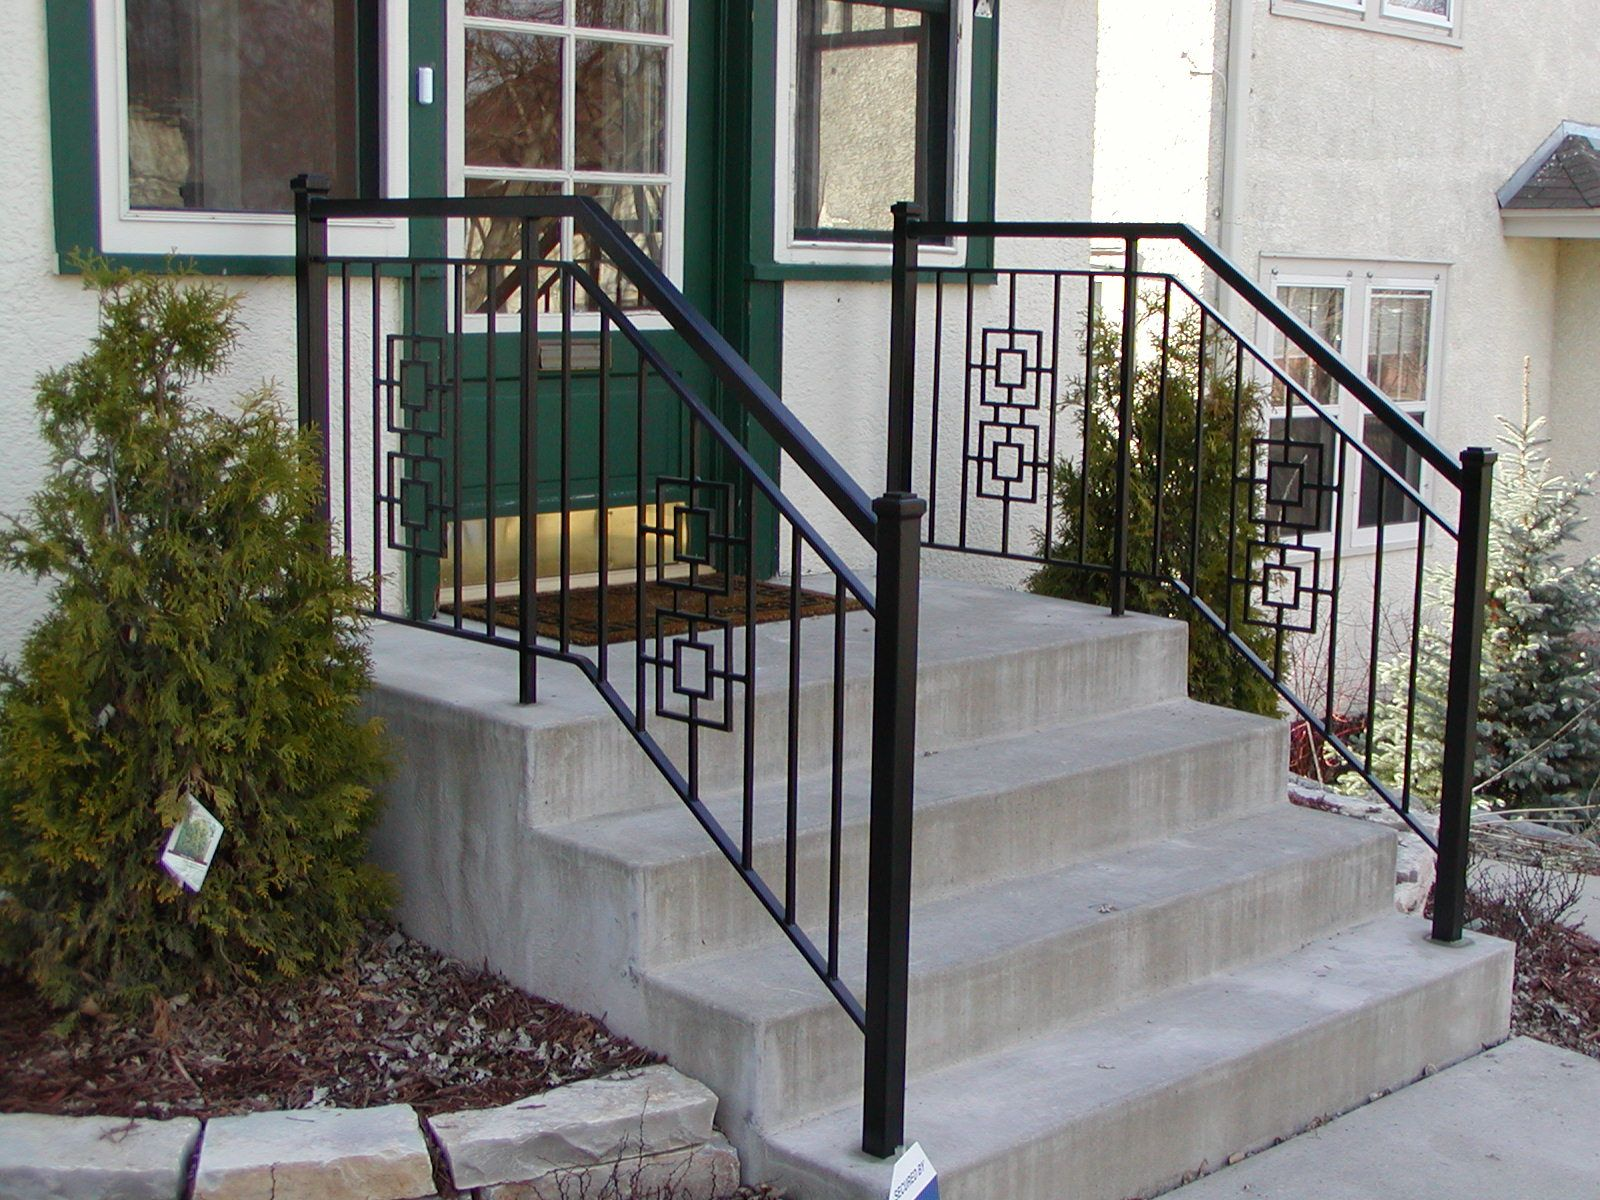 Best Iron Step Railing With 2 Inch Square End Posts And Square Casting Designs In 2019 Metal 640 x 480